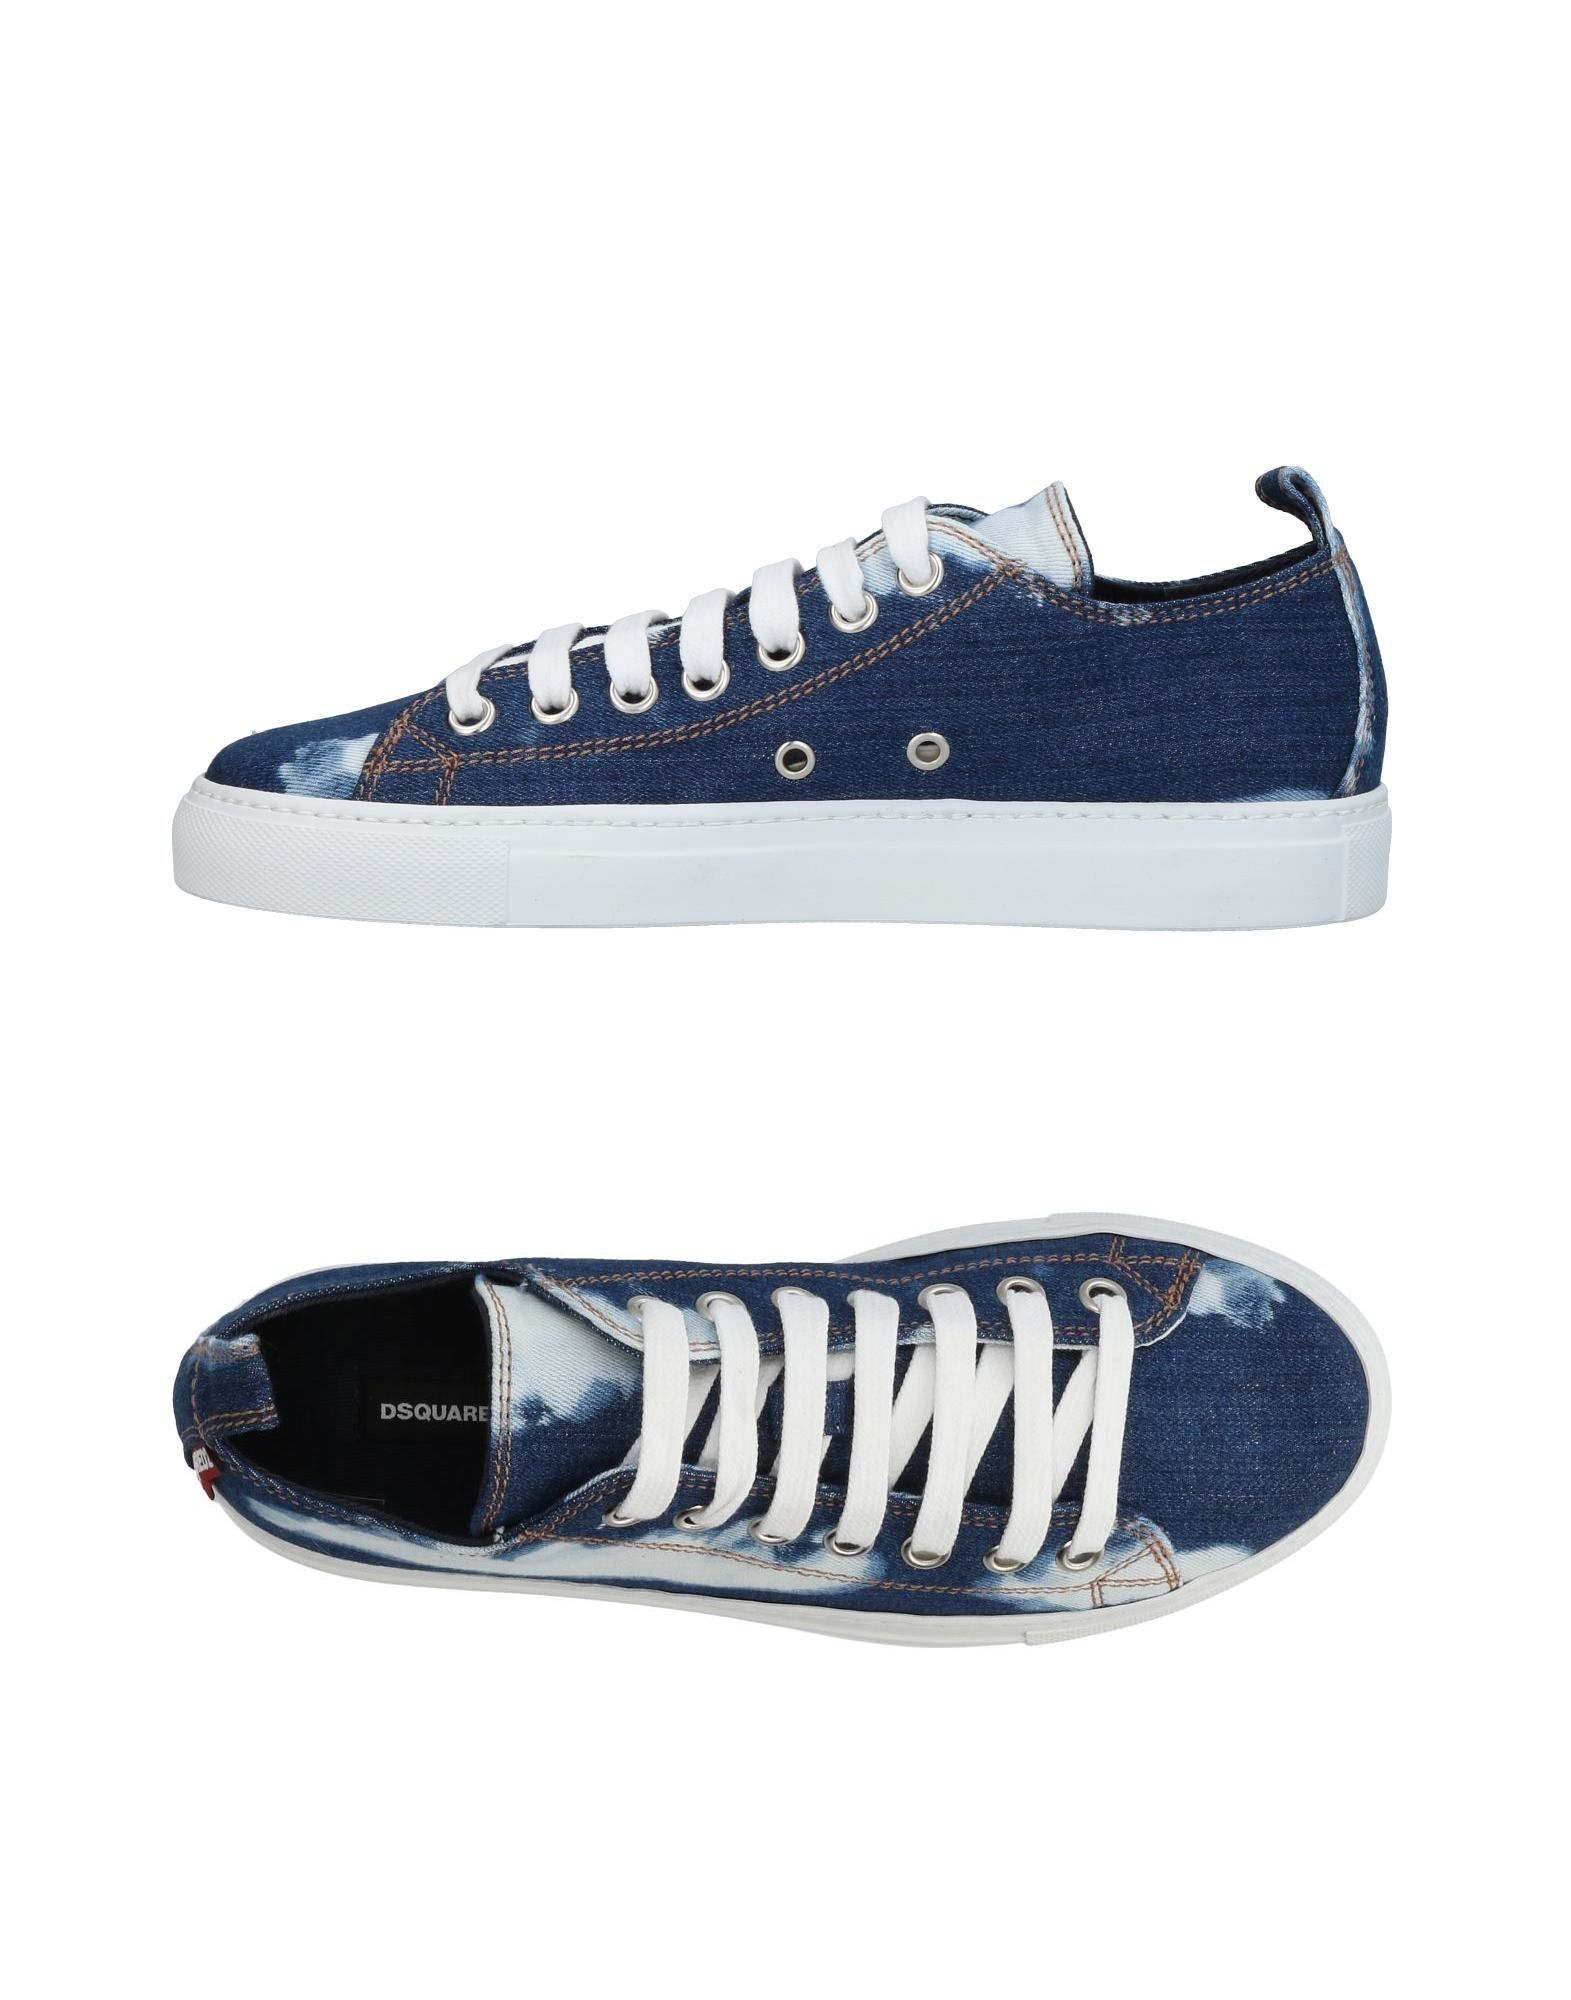 Dsquared2 Sneakers - Women Dsquared2 Dsquared2 Dsquared2 Sneakers online on  United Kingdom - 11421847GE 60d683